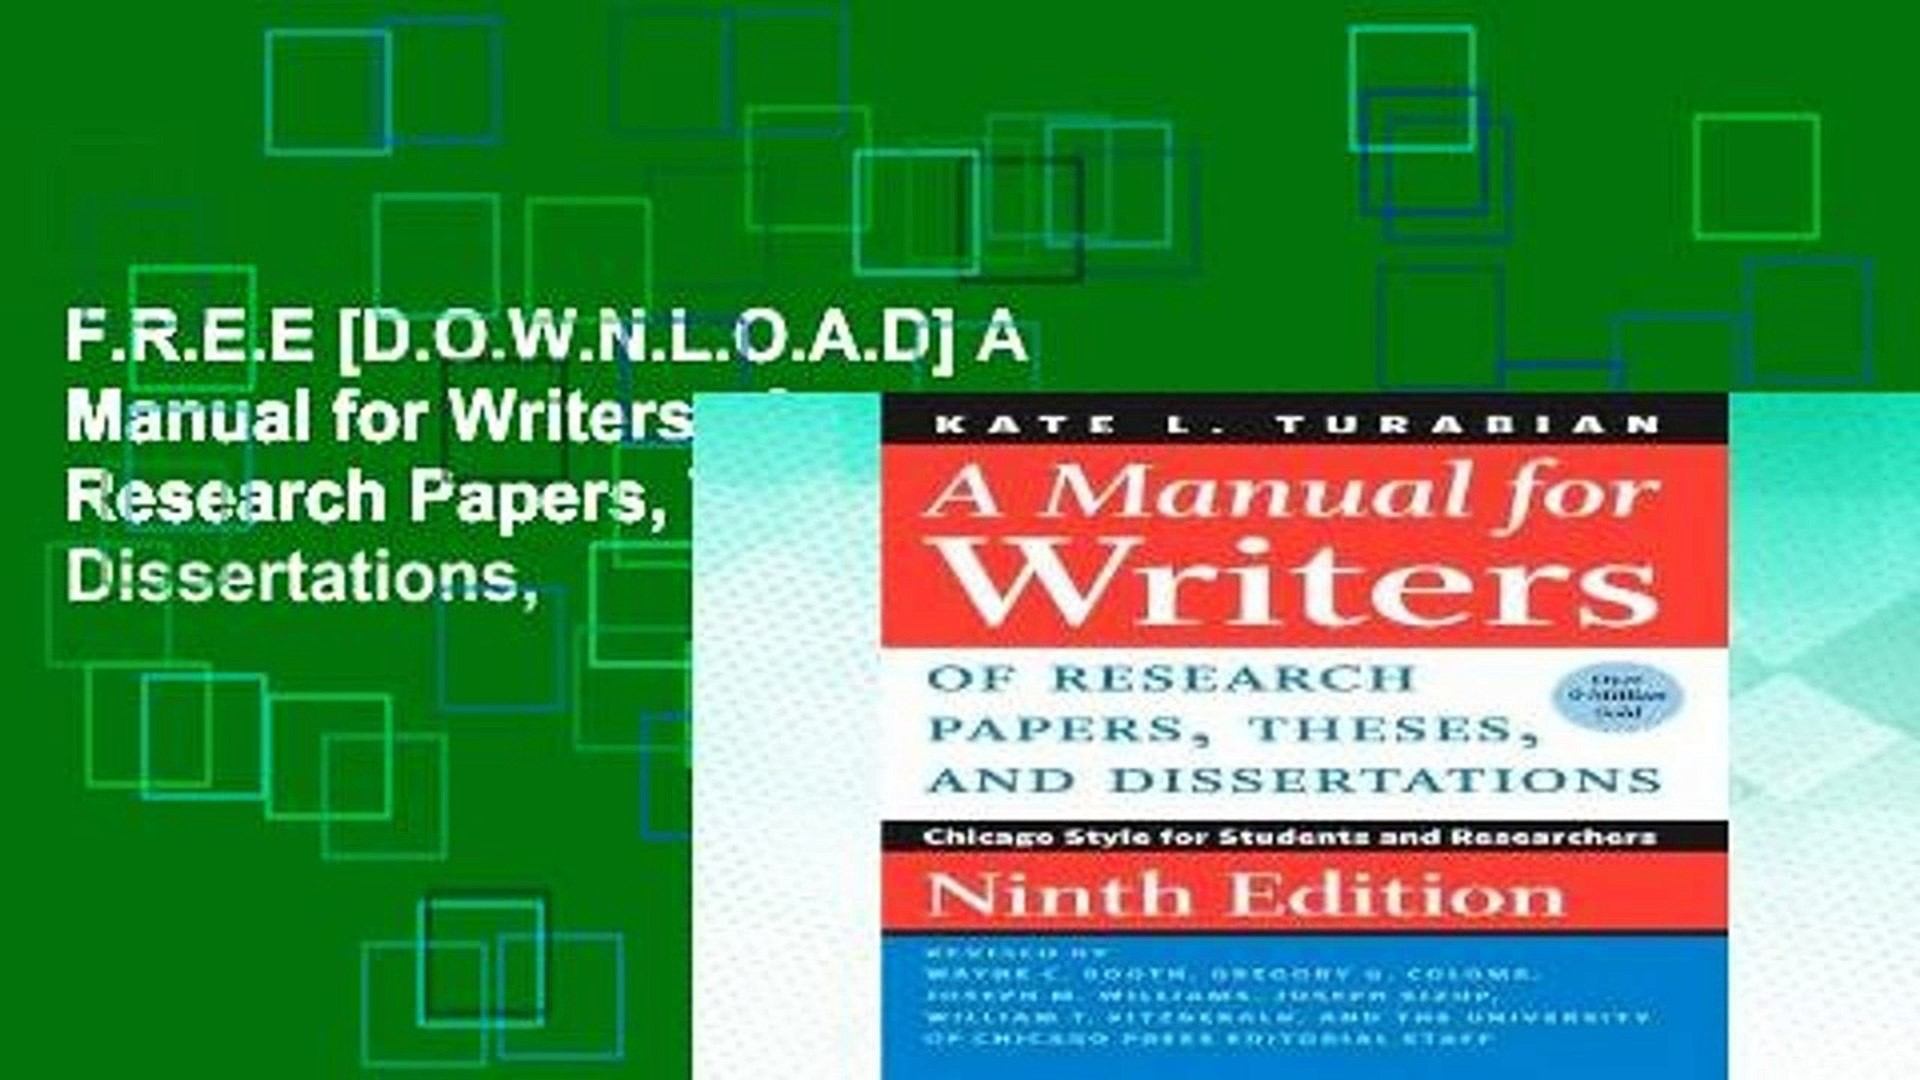 016 Manual For Writers Of Research Papers Theses And Dissertations Paper X1080 Sensational A Ed. 8 8th Edition Ninth Pdf 1920